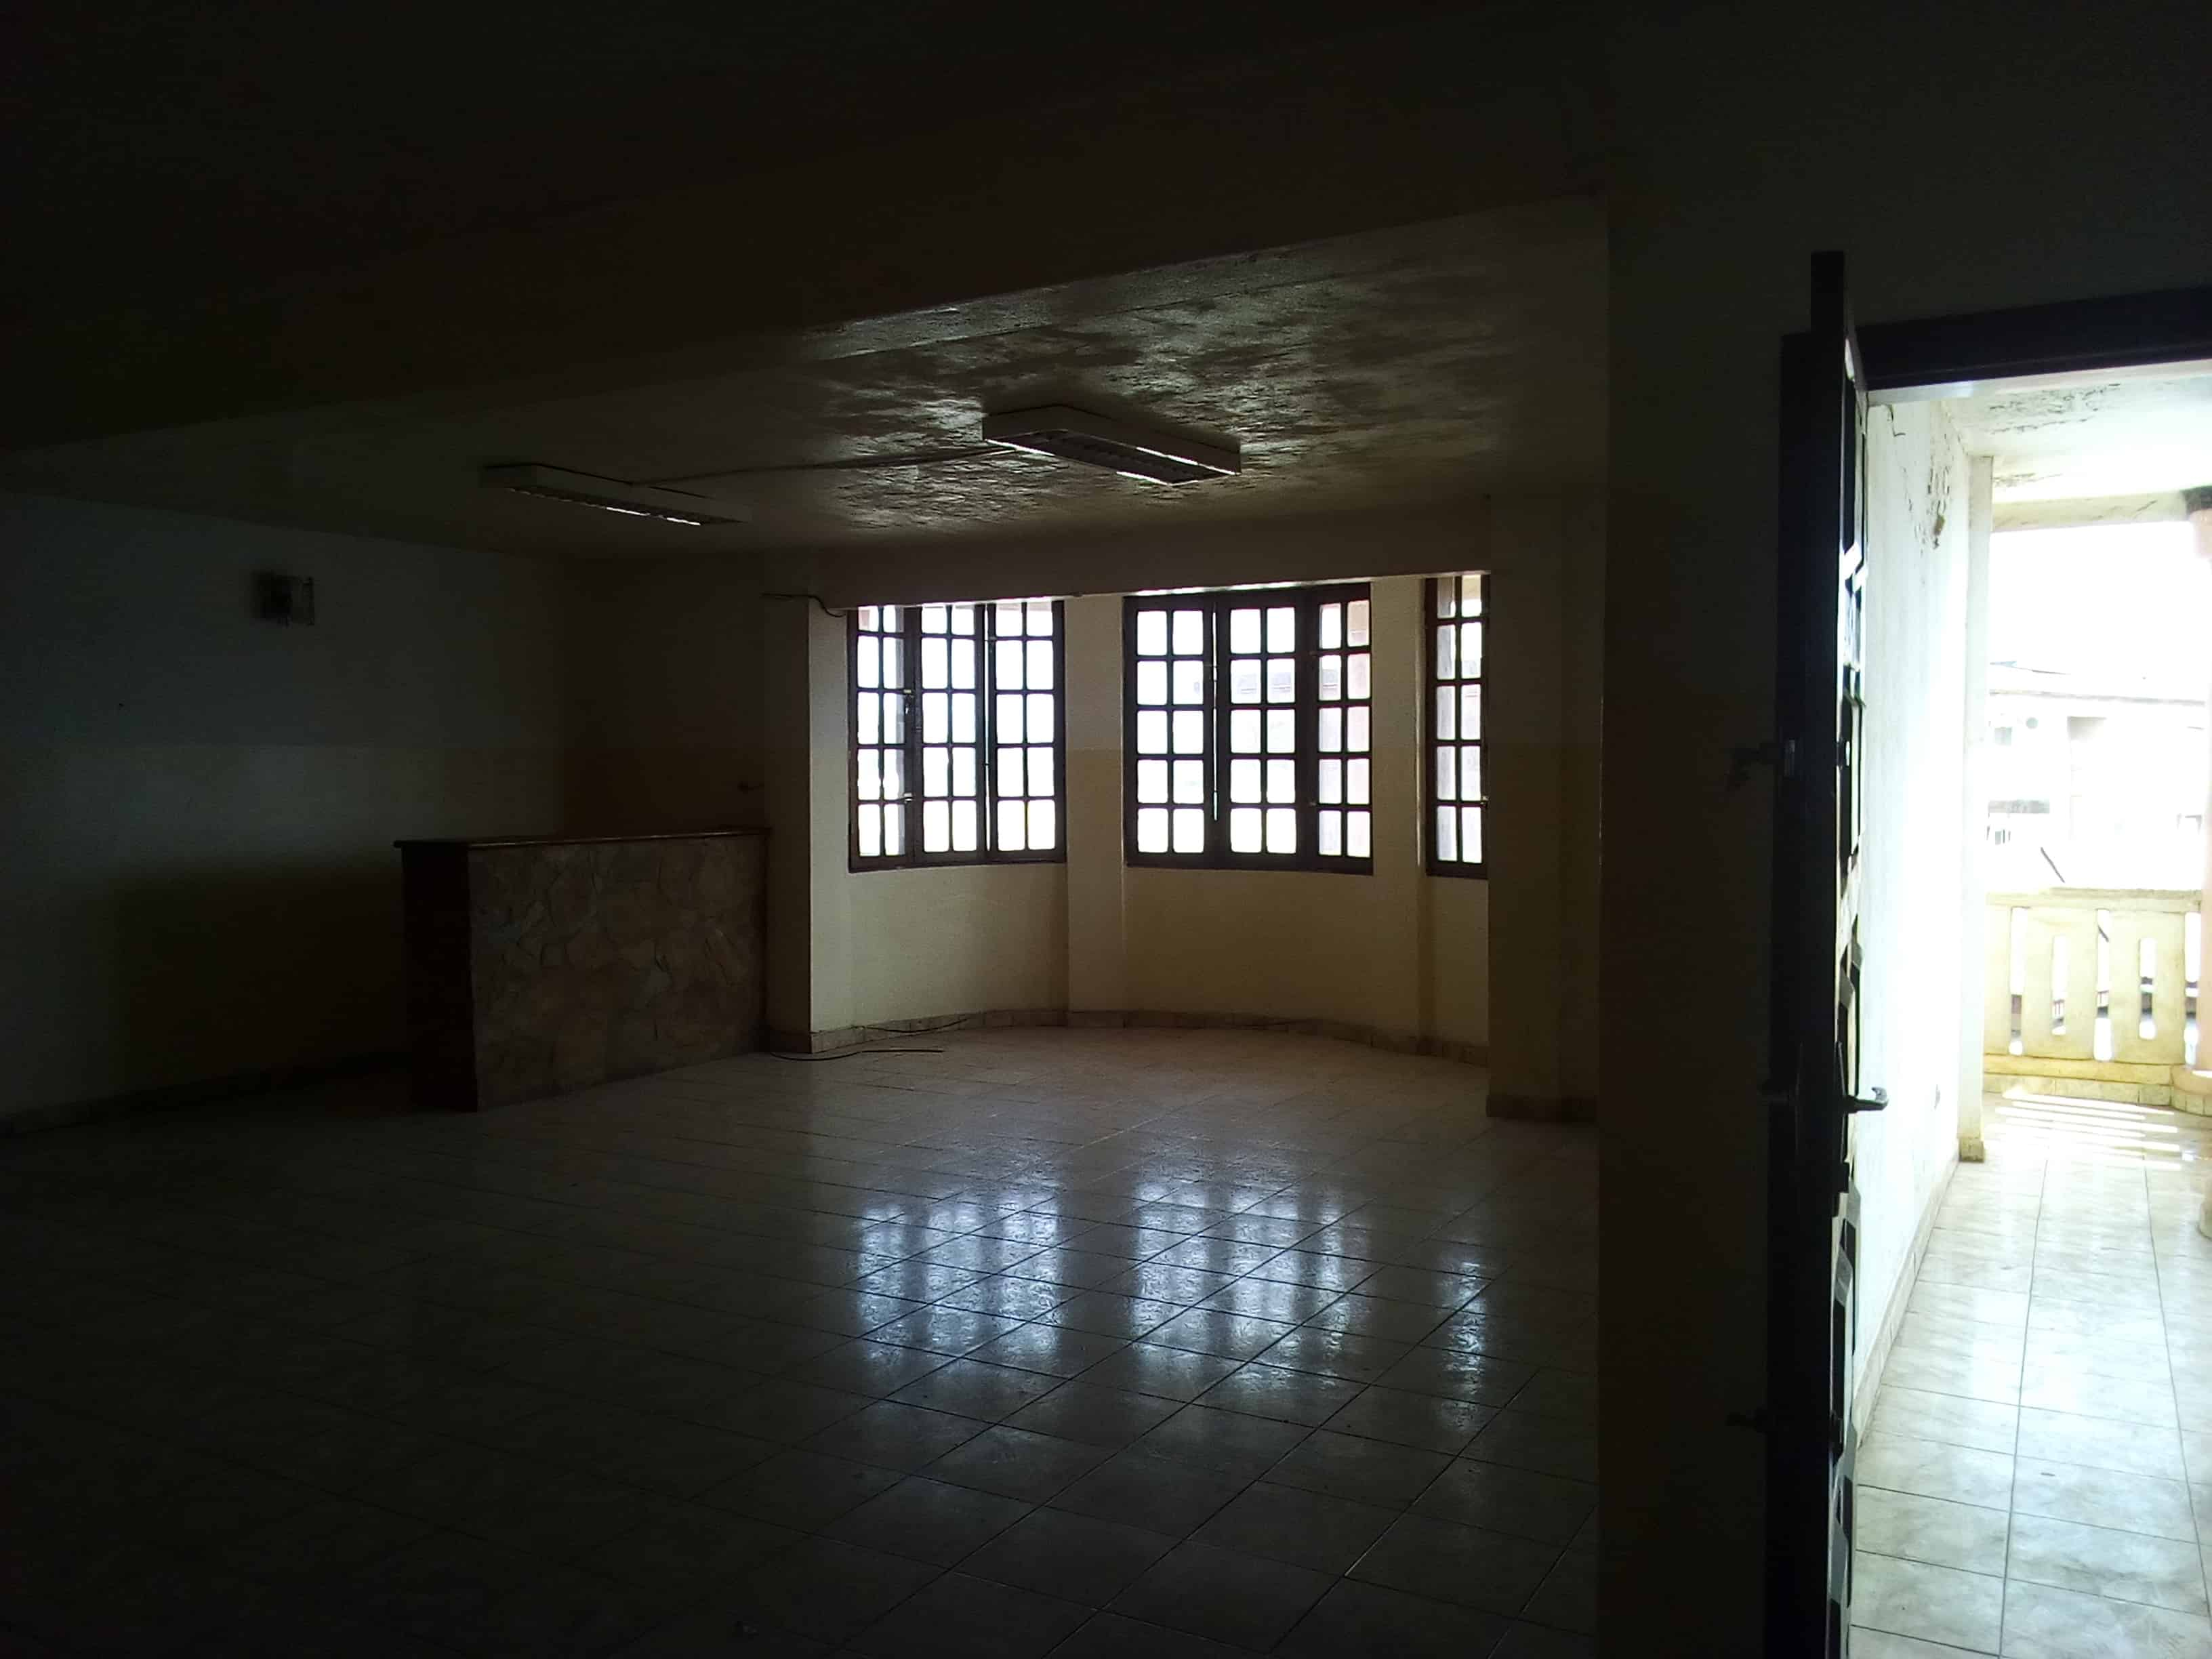 Office to rent at Yaoundé, Bastos, pas loin de la nouvelle route - 100 m2 - 400 000 FCFA